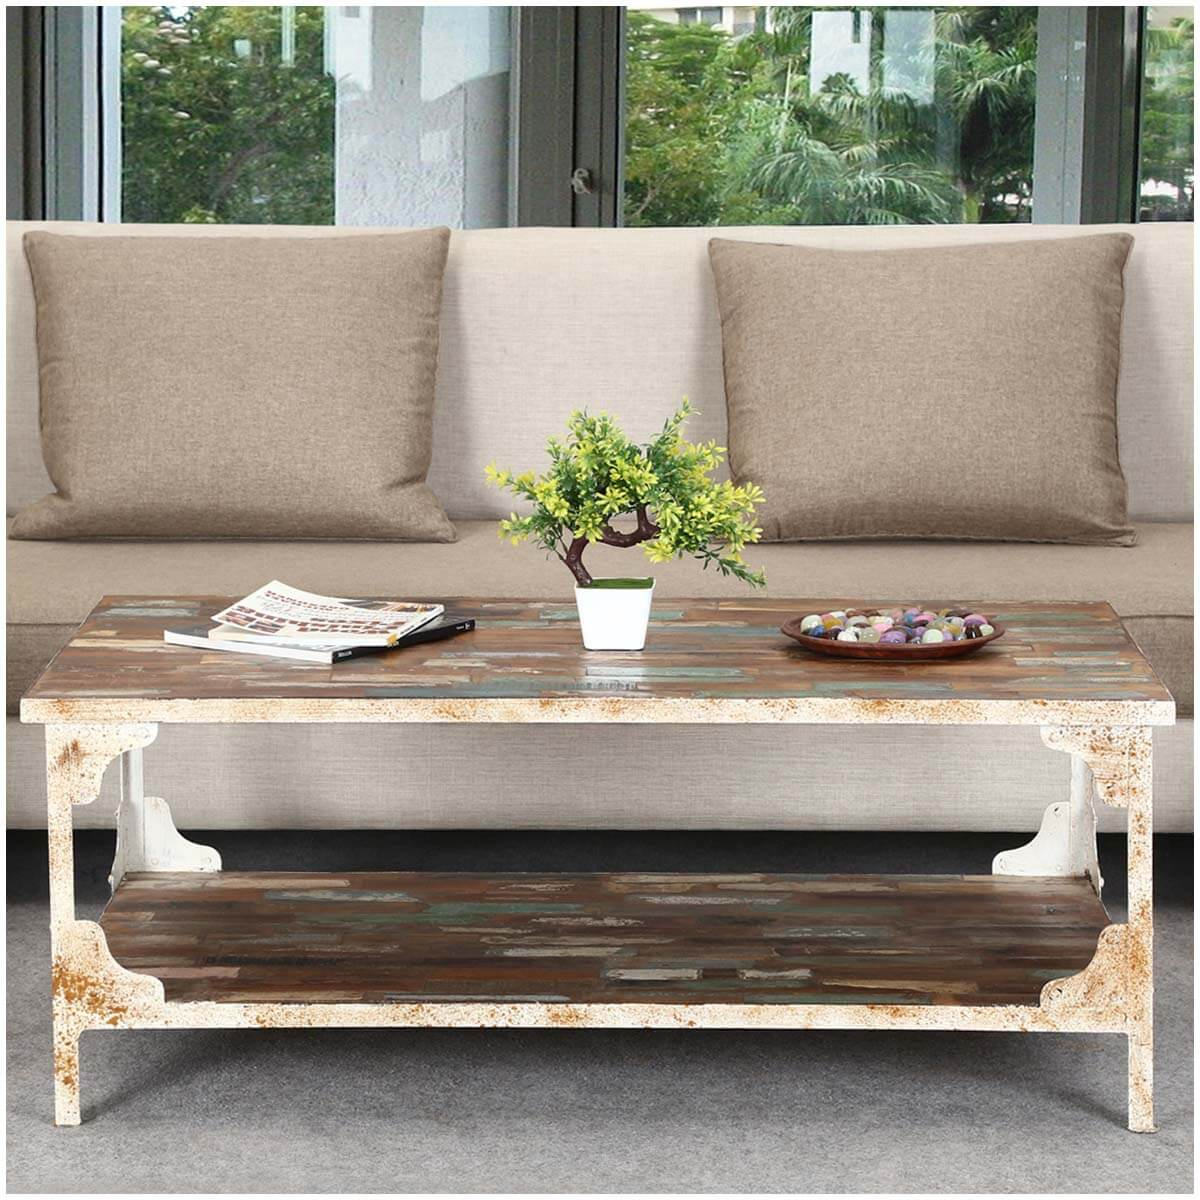 Reclaimed Wood And Metal Coffee Table: Industrial Reclaimed Wood & Iron 2 Tier Coffee Table